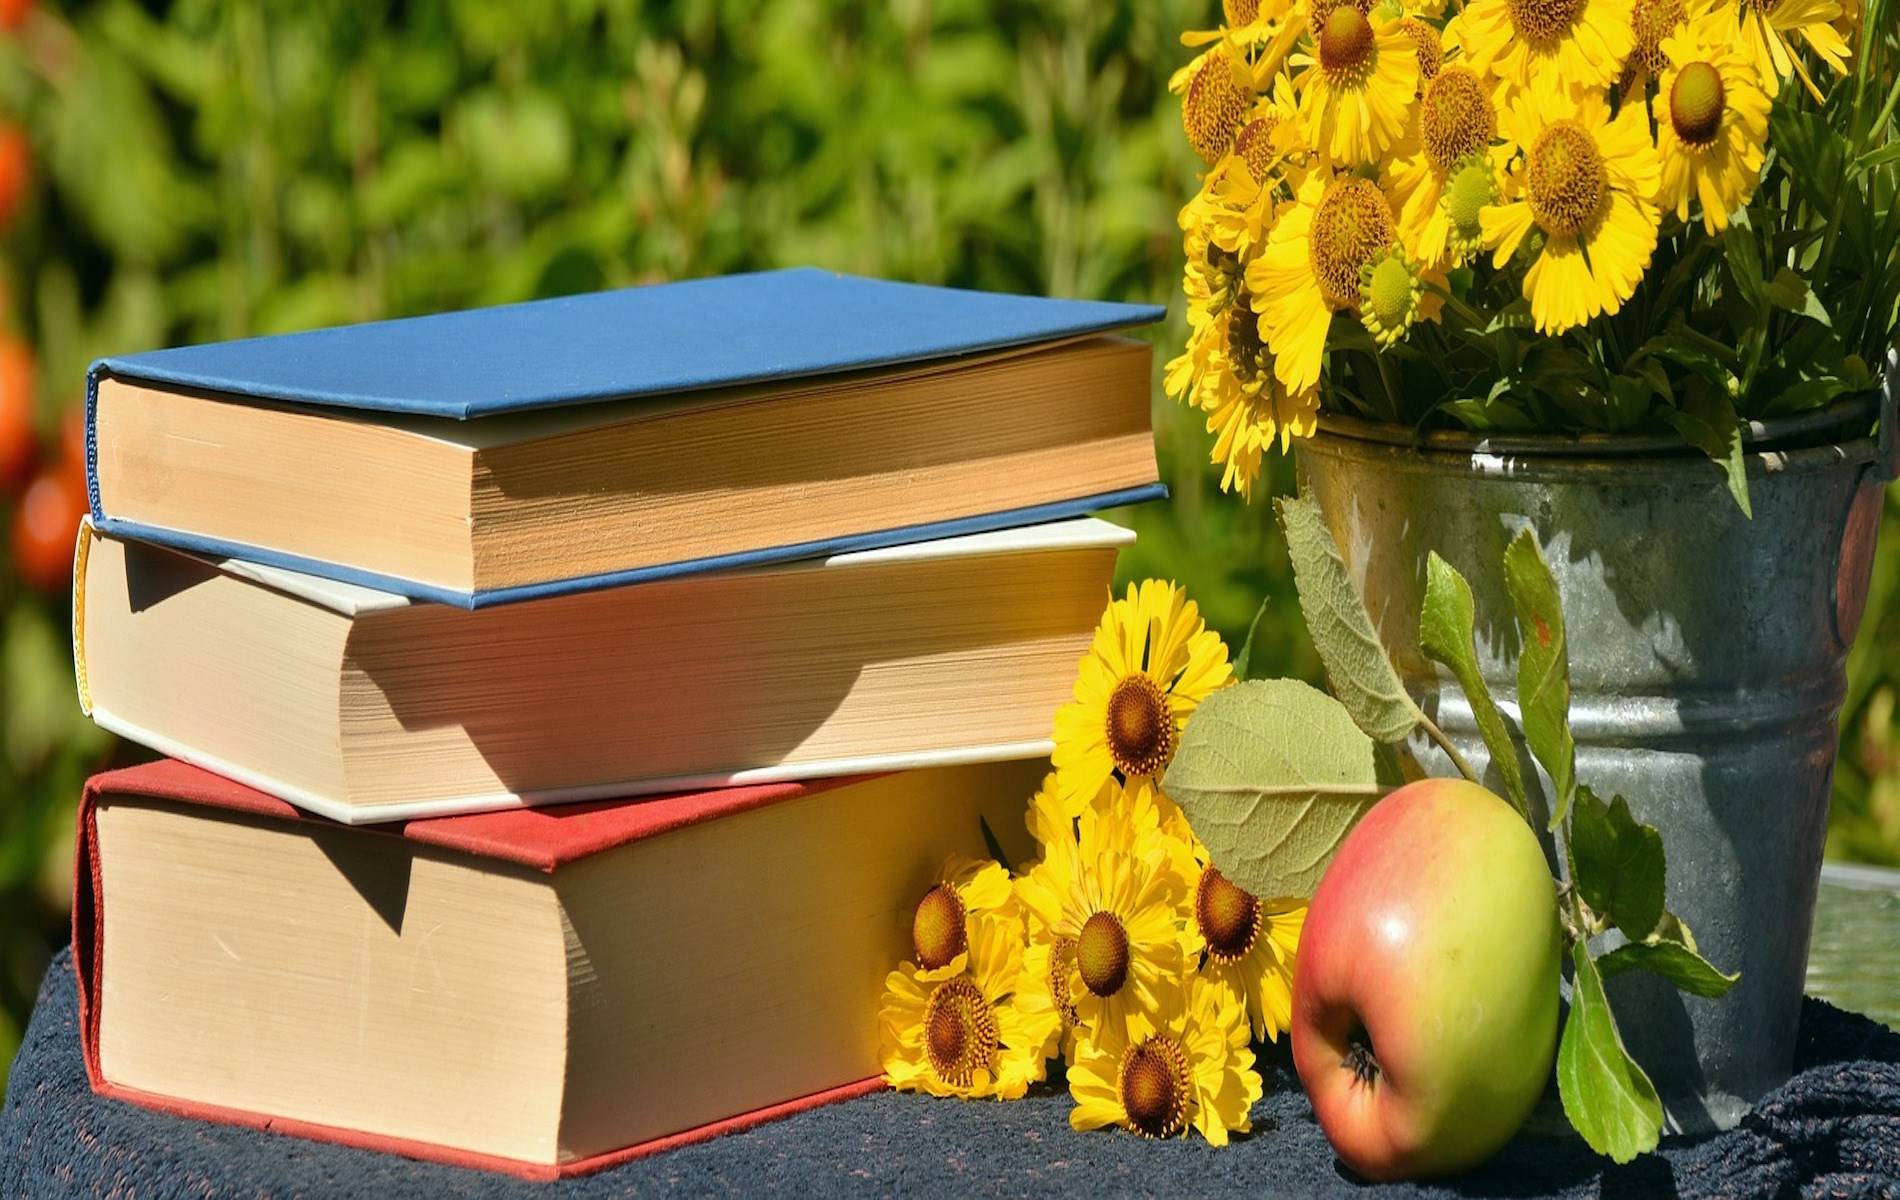 apple and books outside copy.jpg